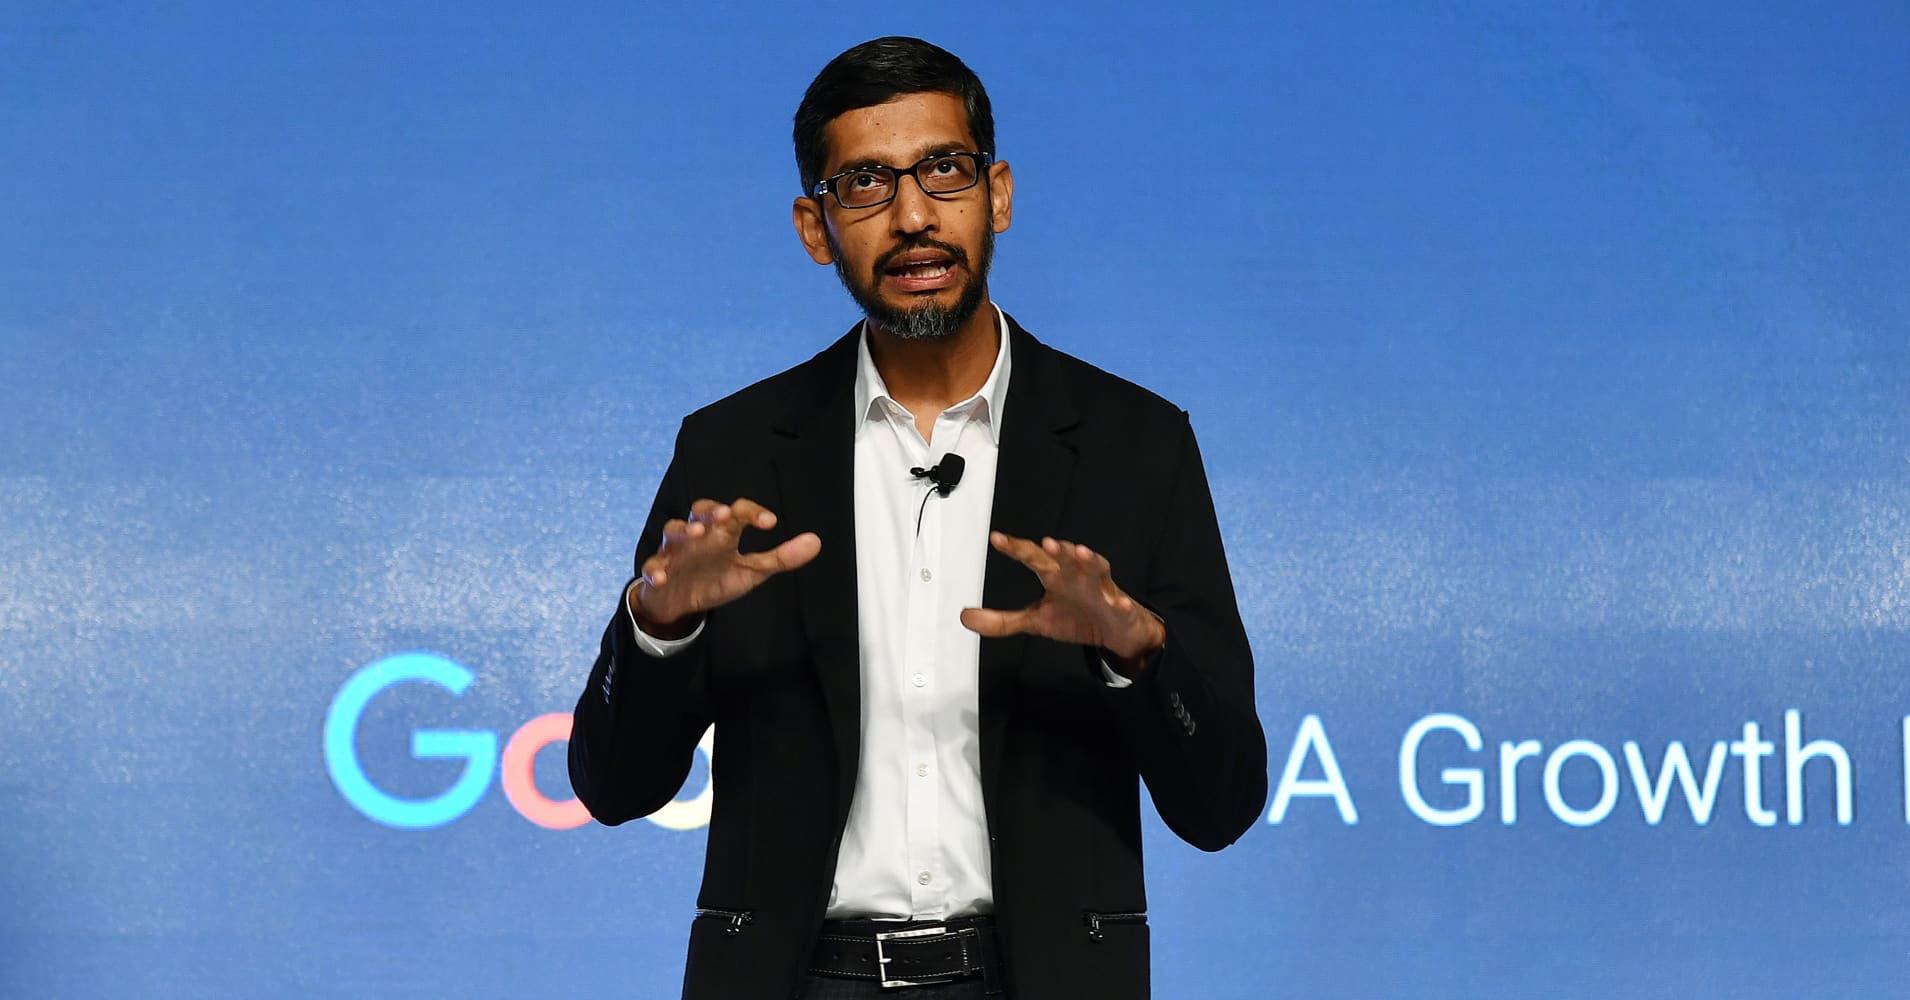 Google employees: We no longer believe the company places values over profits